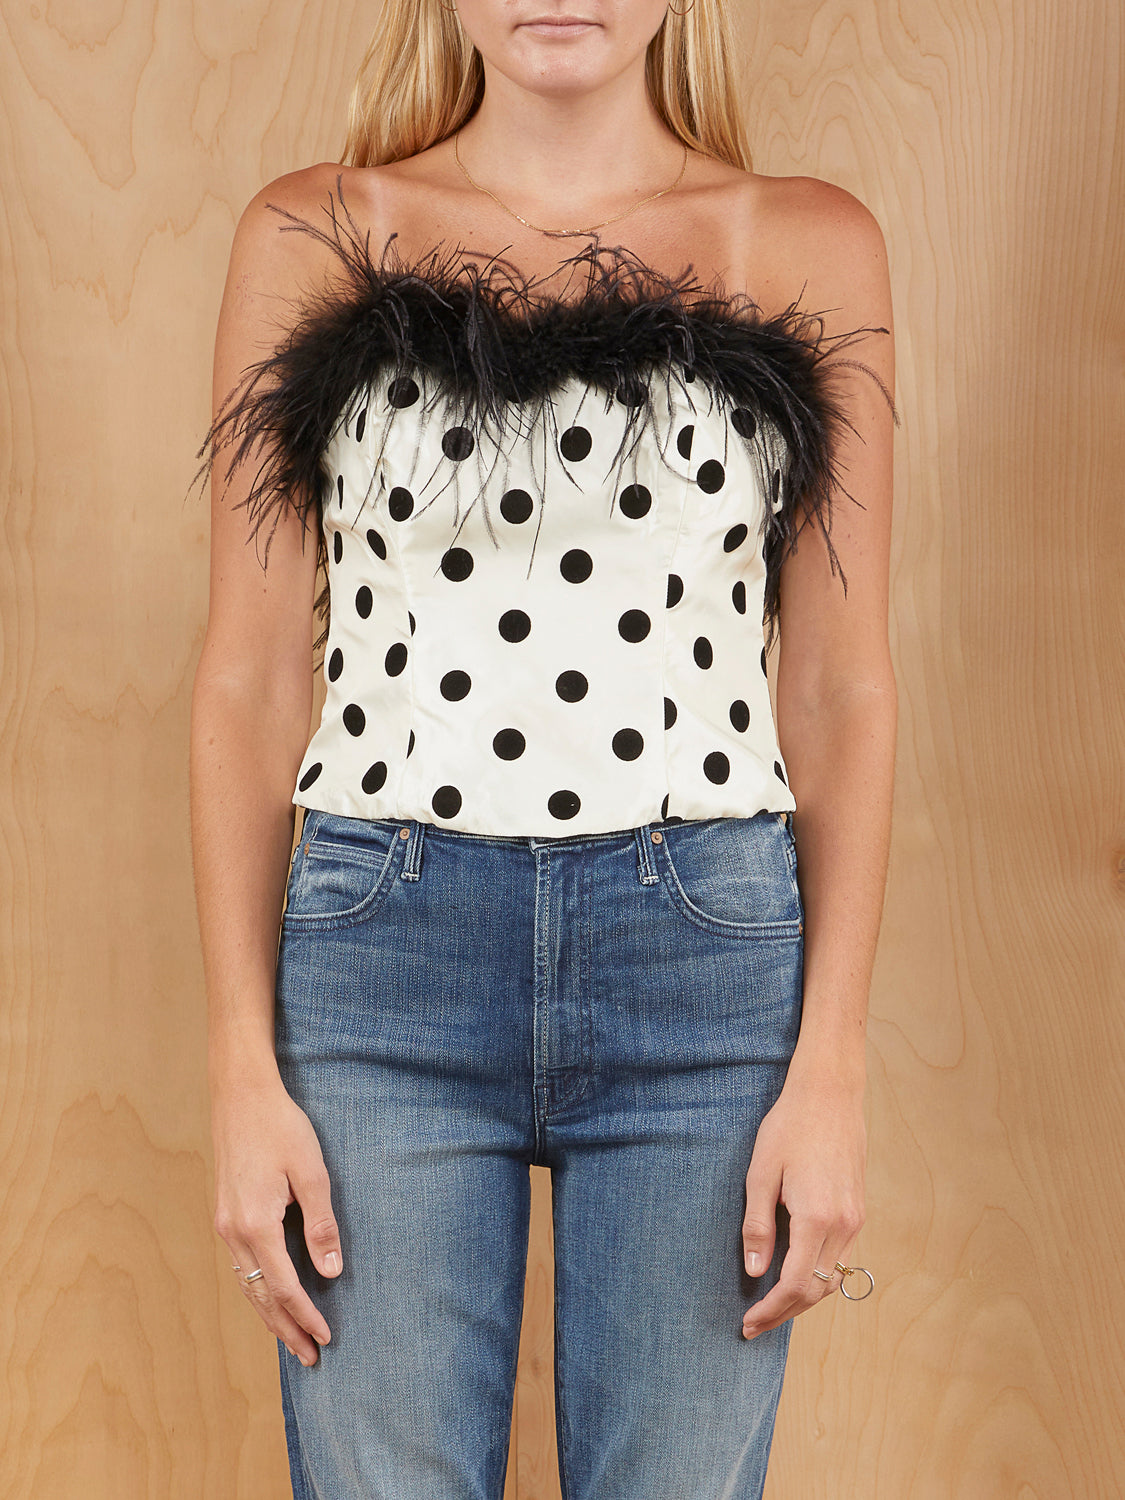 LPA Polka Dot Bustier with Feather Trim